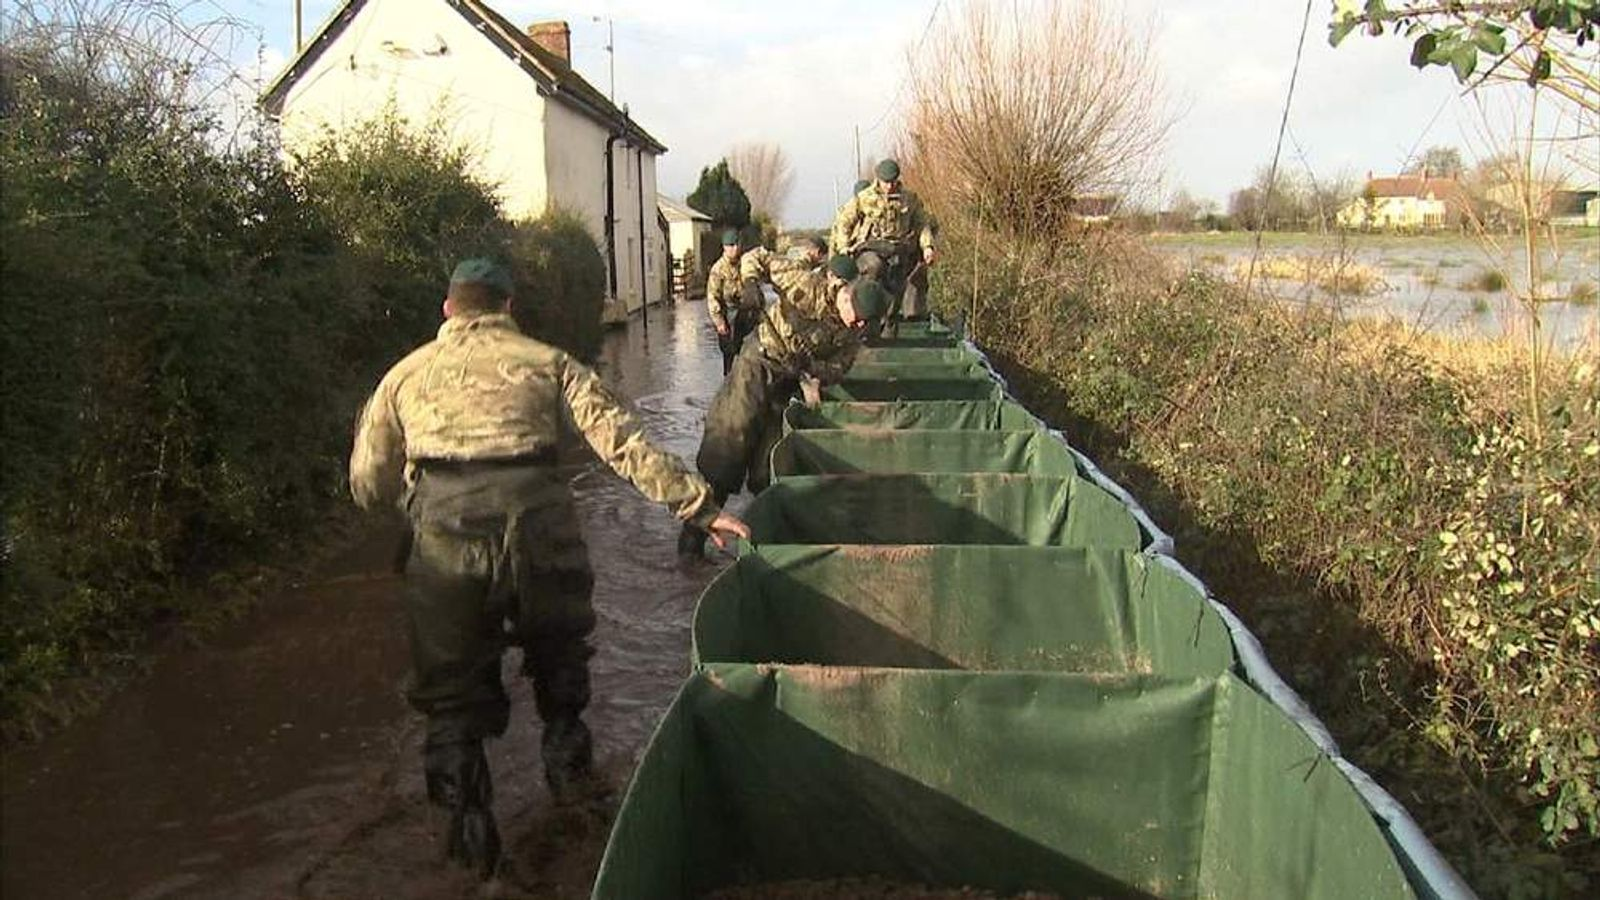 Members of the armed forces help to build flood defences in Somerset